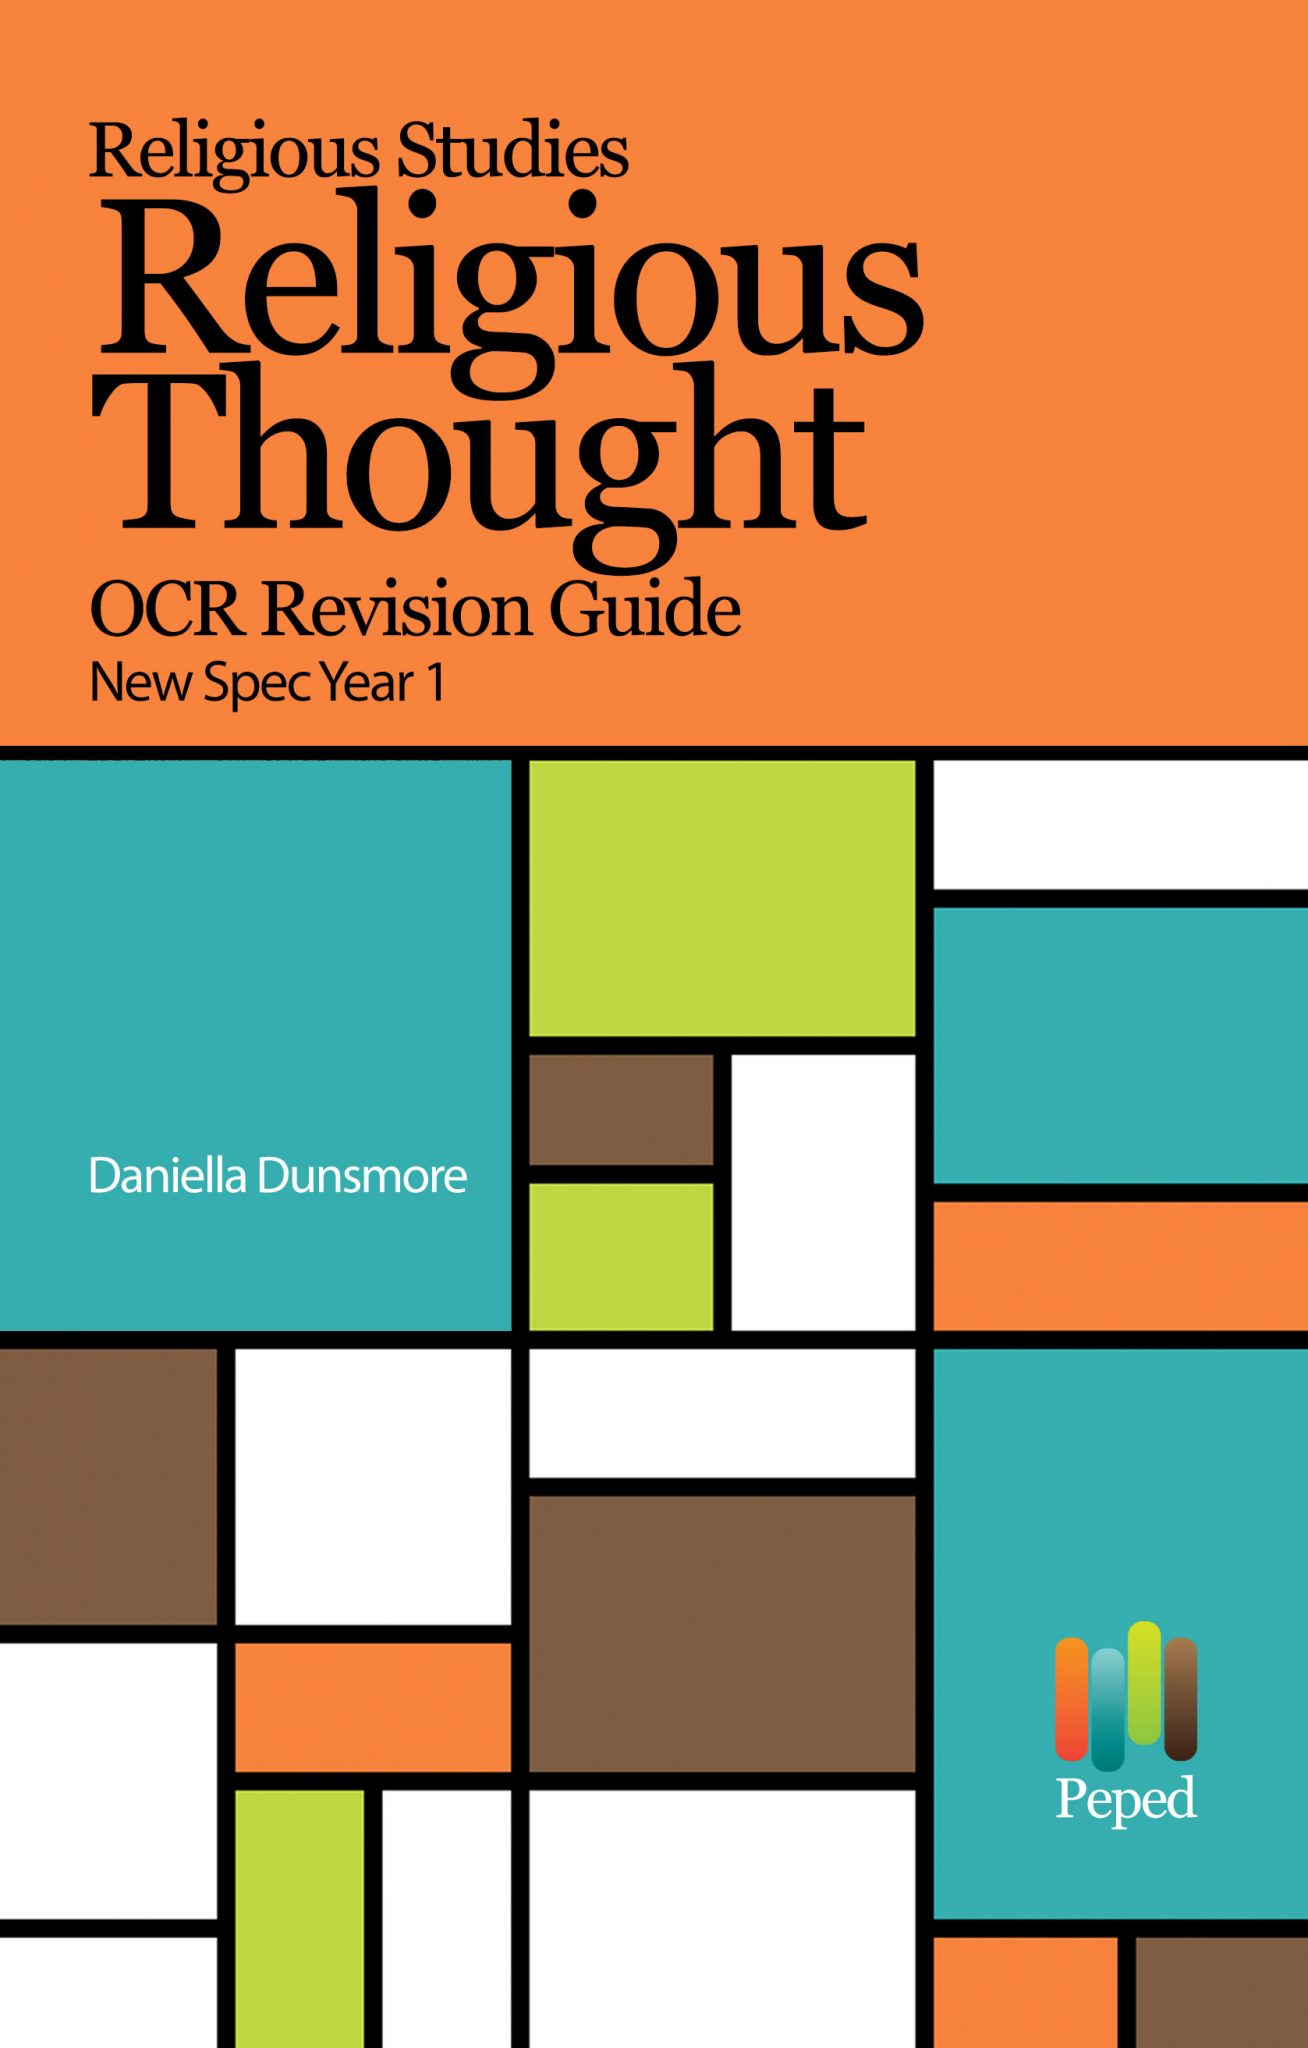 Religious Studies: Religious Thought OCR Revision Guide New Spec Year 1